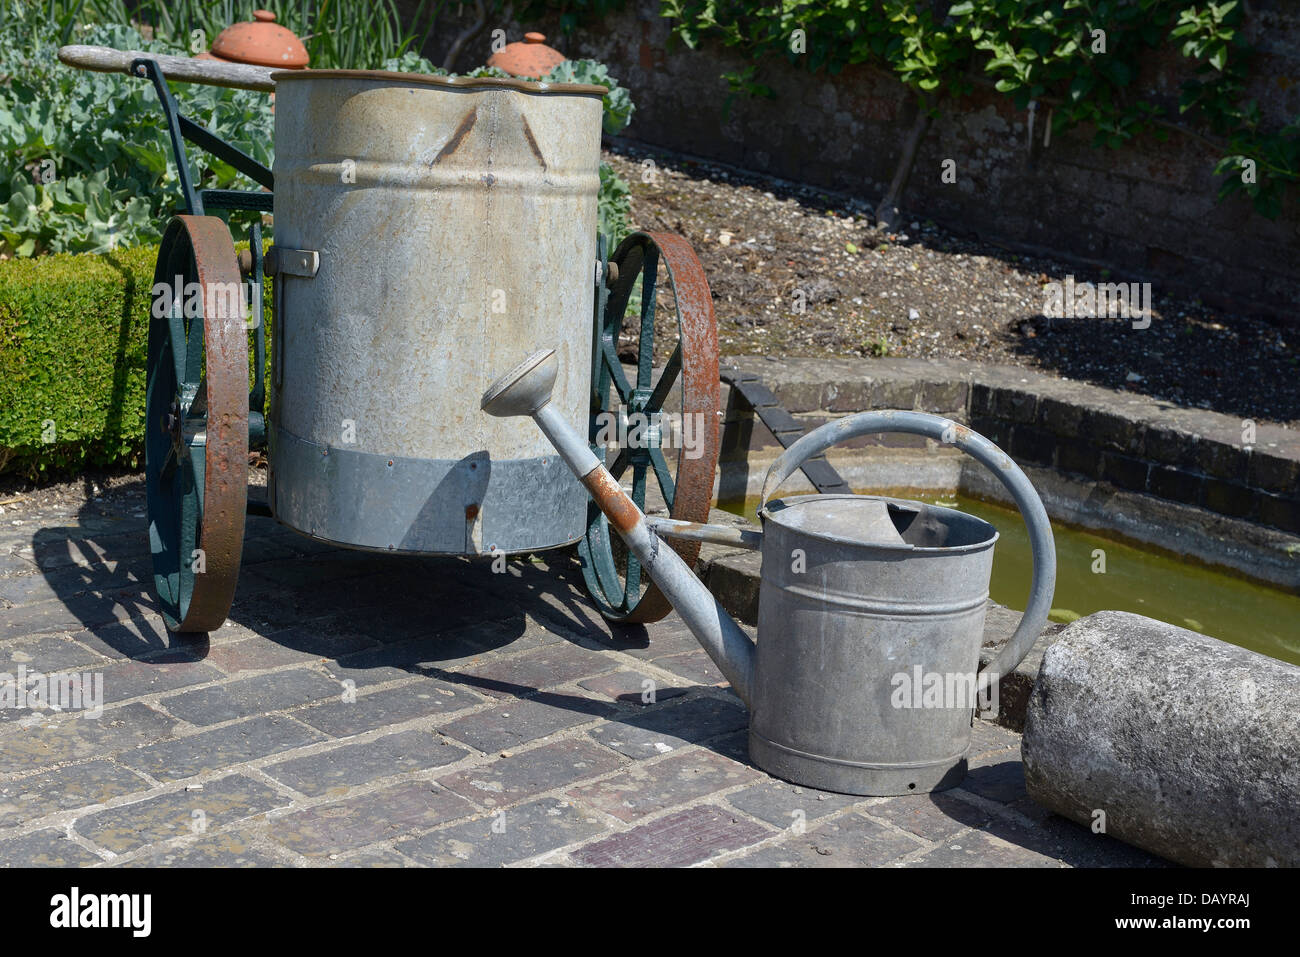 An old galvanized water bower and watering can sitting next to a small water reservoir  in a kitchen garden ( garden - Stock Image